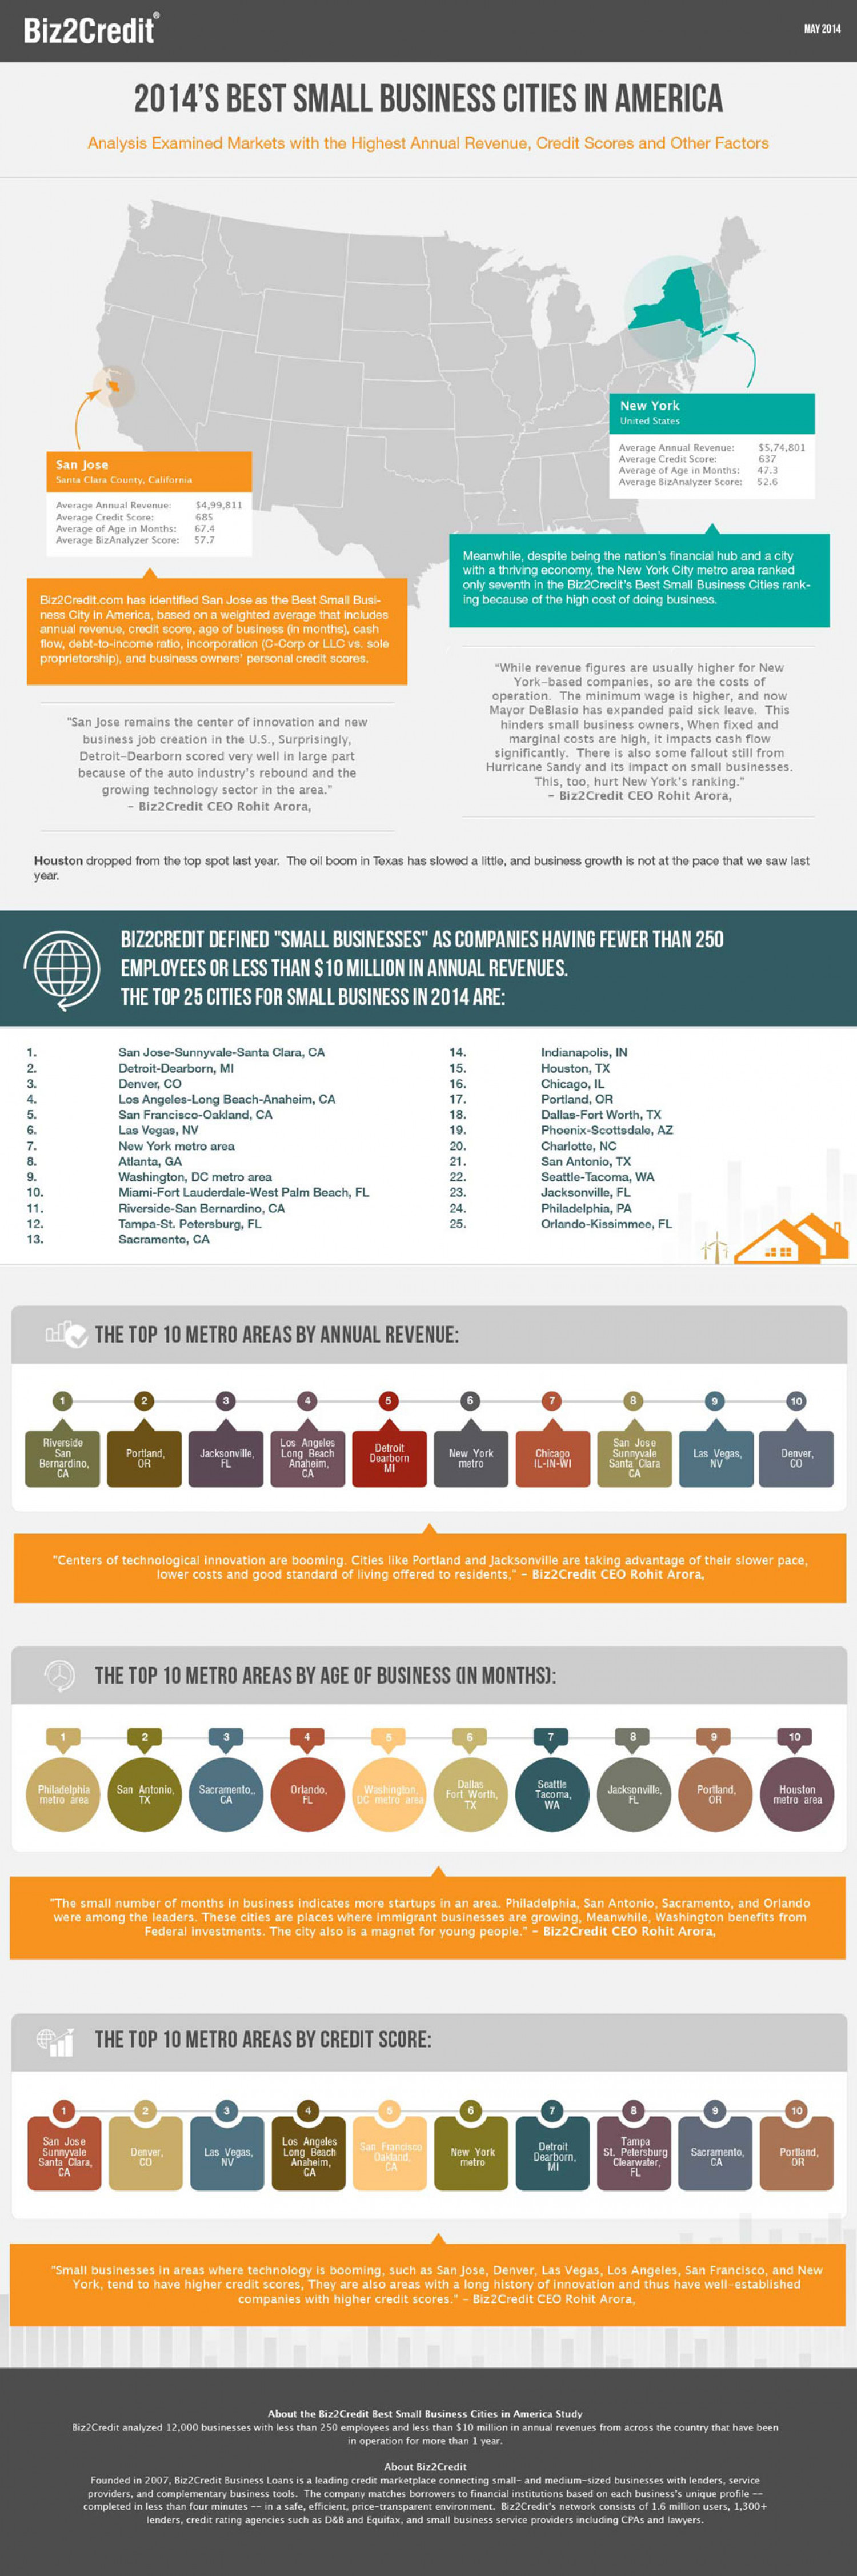 2014's Best Small Business Cities in America Infographic